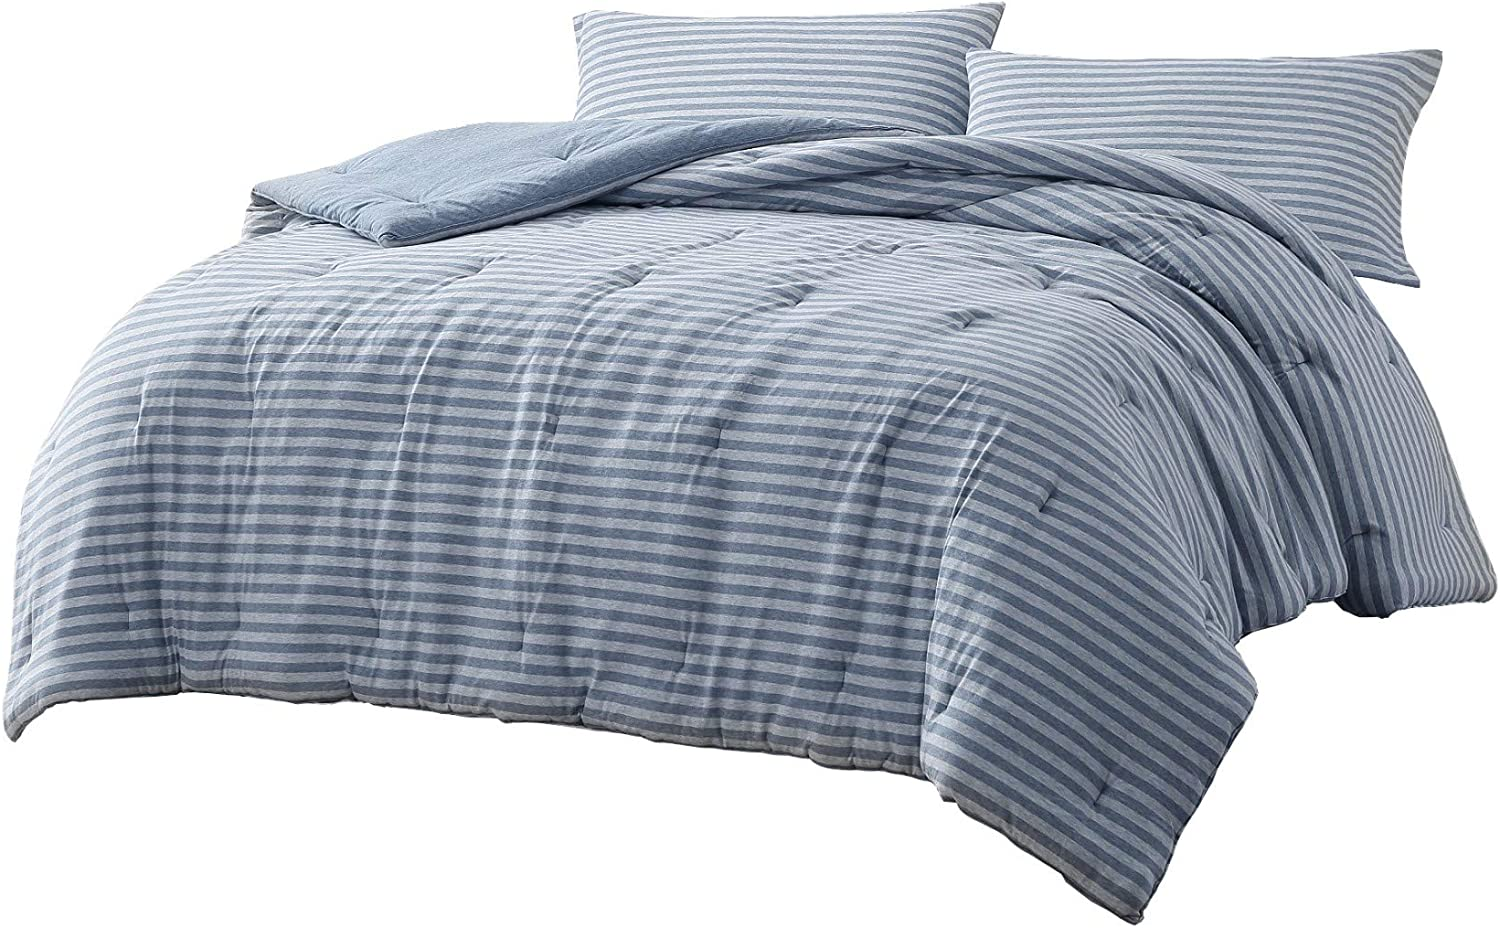 Chezmoi Collection Levi 2-Piece Striped Heather Jersey Knit Cotton Comforter Set - Solid Reversible Lightweight Super Soft and Breathable Bedding Set (Twin, Shadow Blue/Gray)